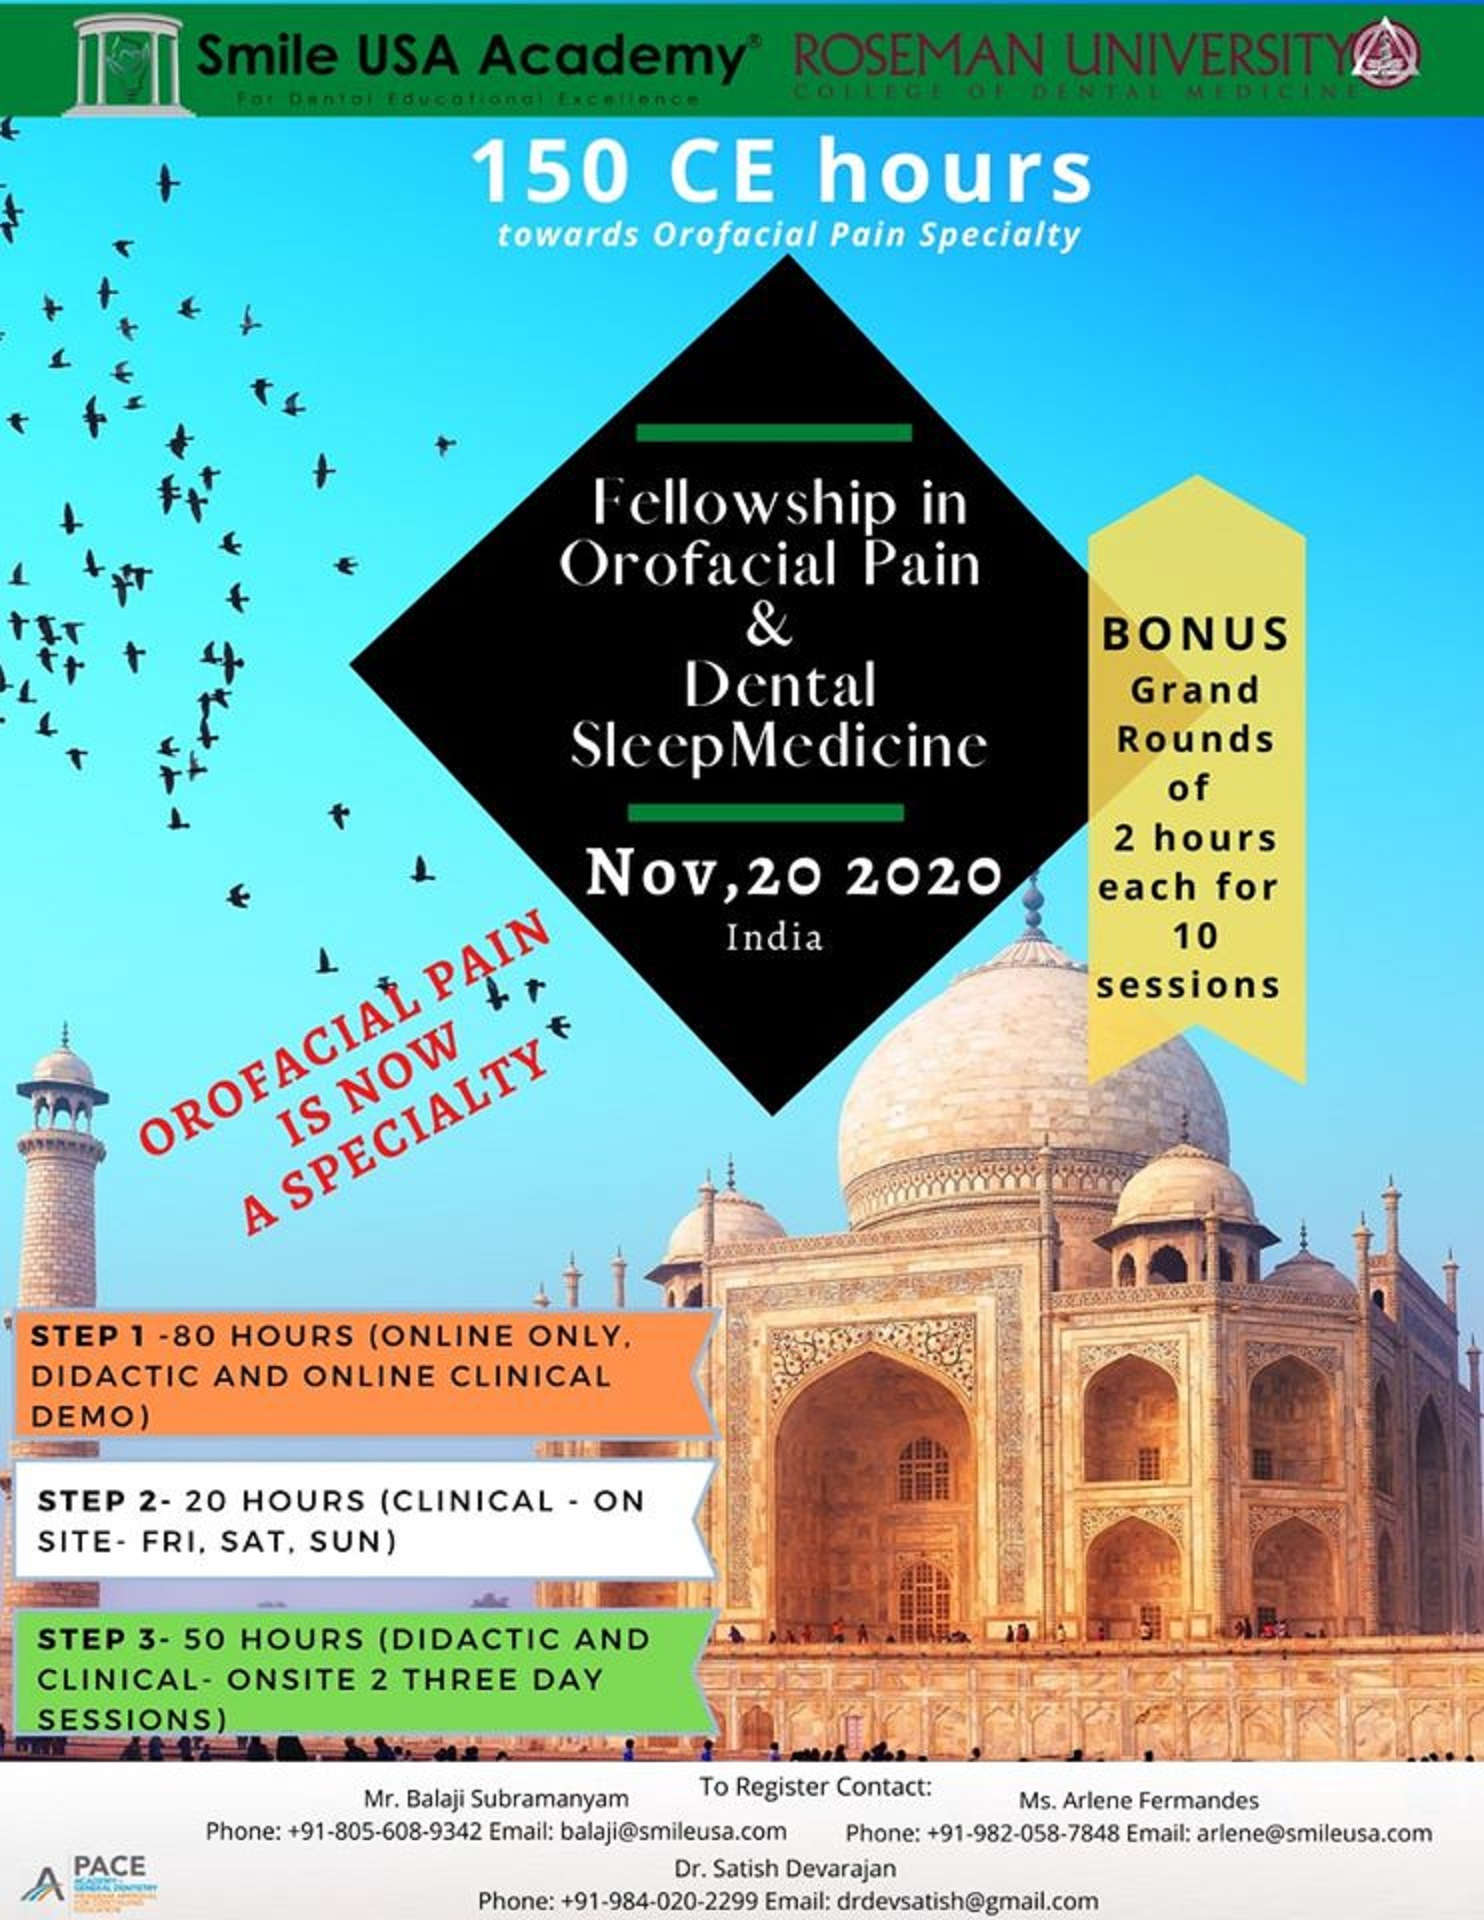 Fellowship in Orofacial Pain & Dental Sleep Medicine